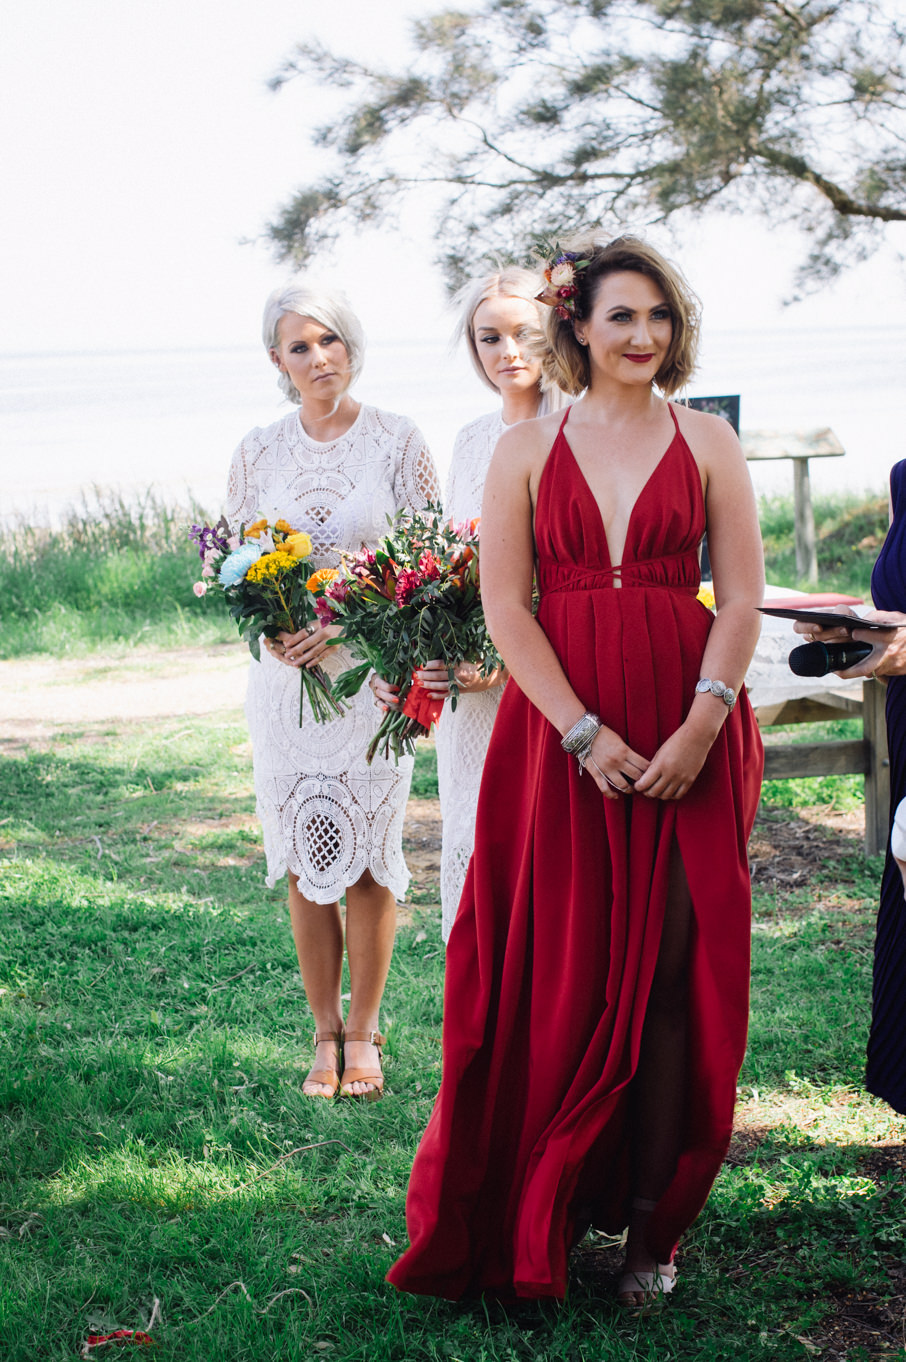 Mandurah Wedding Photographer Ceremony 8